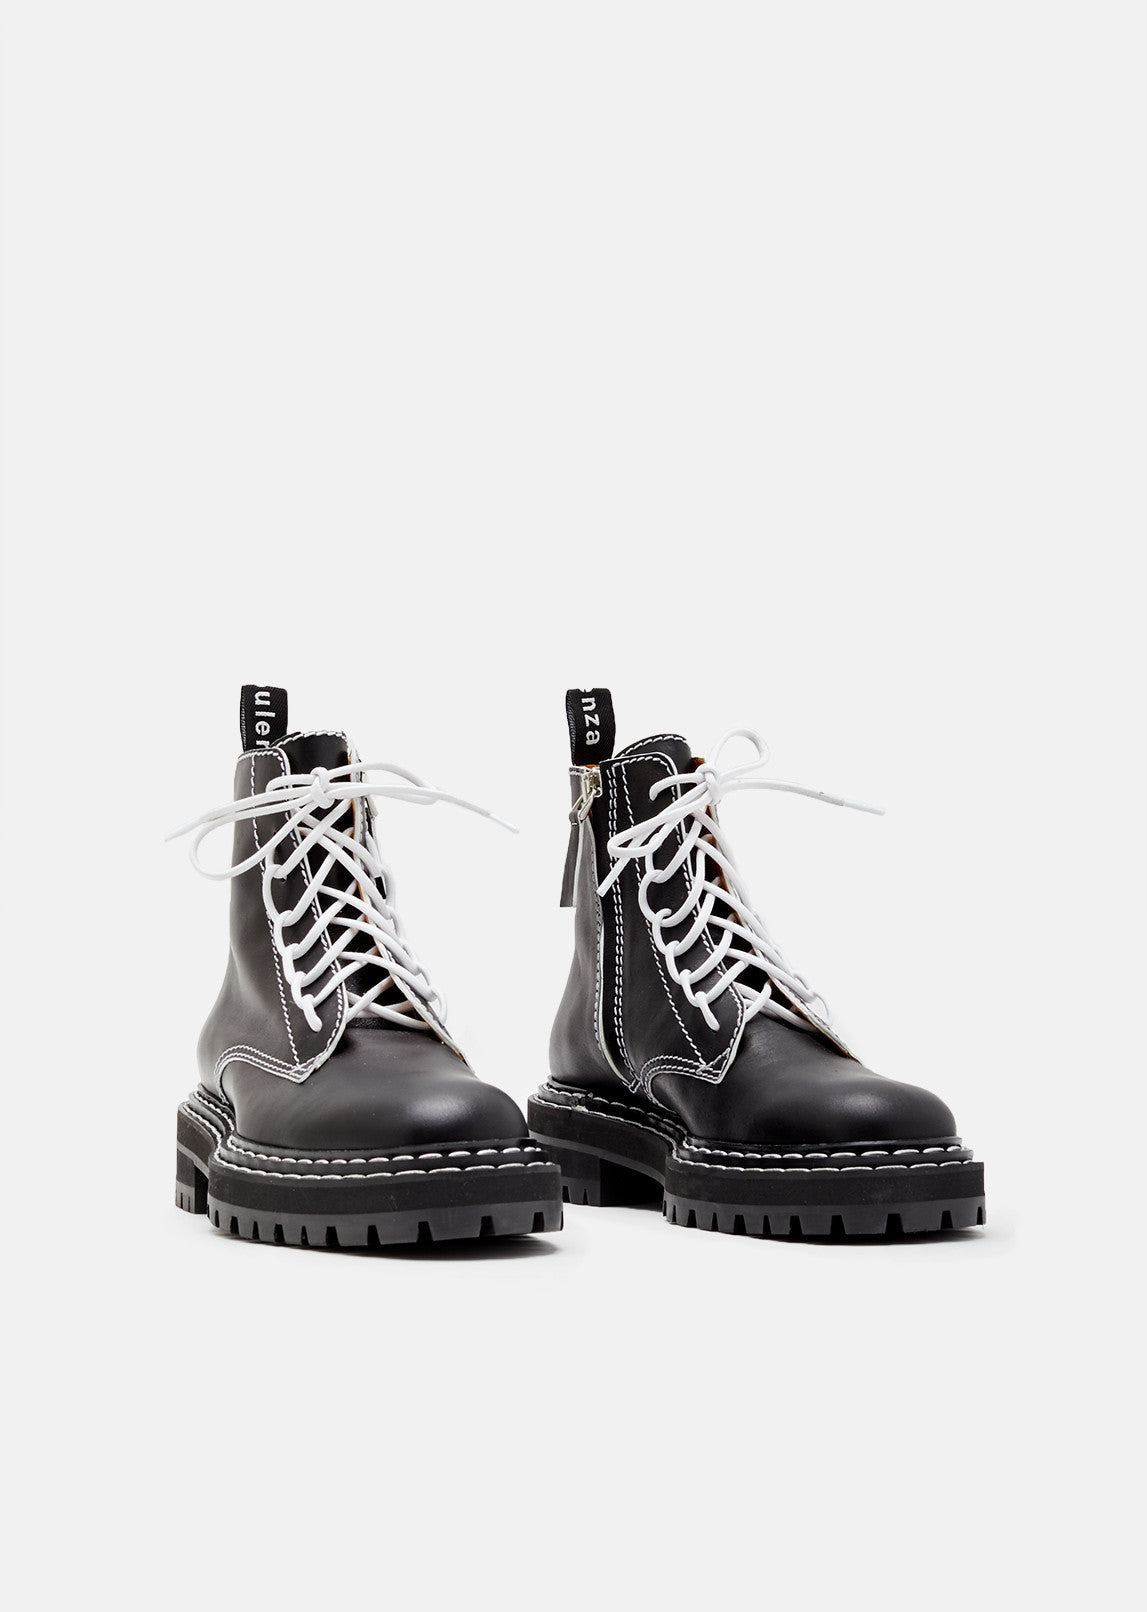 Outlet Looking For Many Kinds Of Online Proenza Schouler Leather Boots pA8Ml9